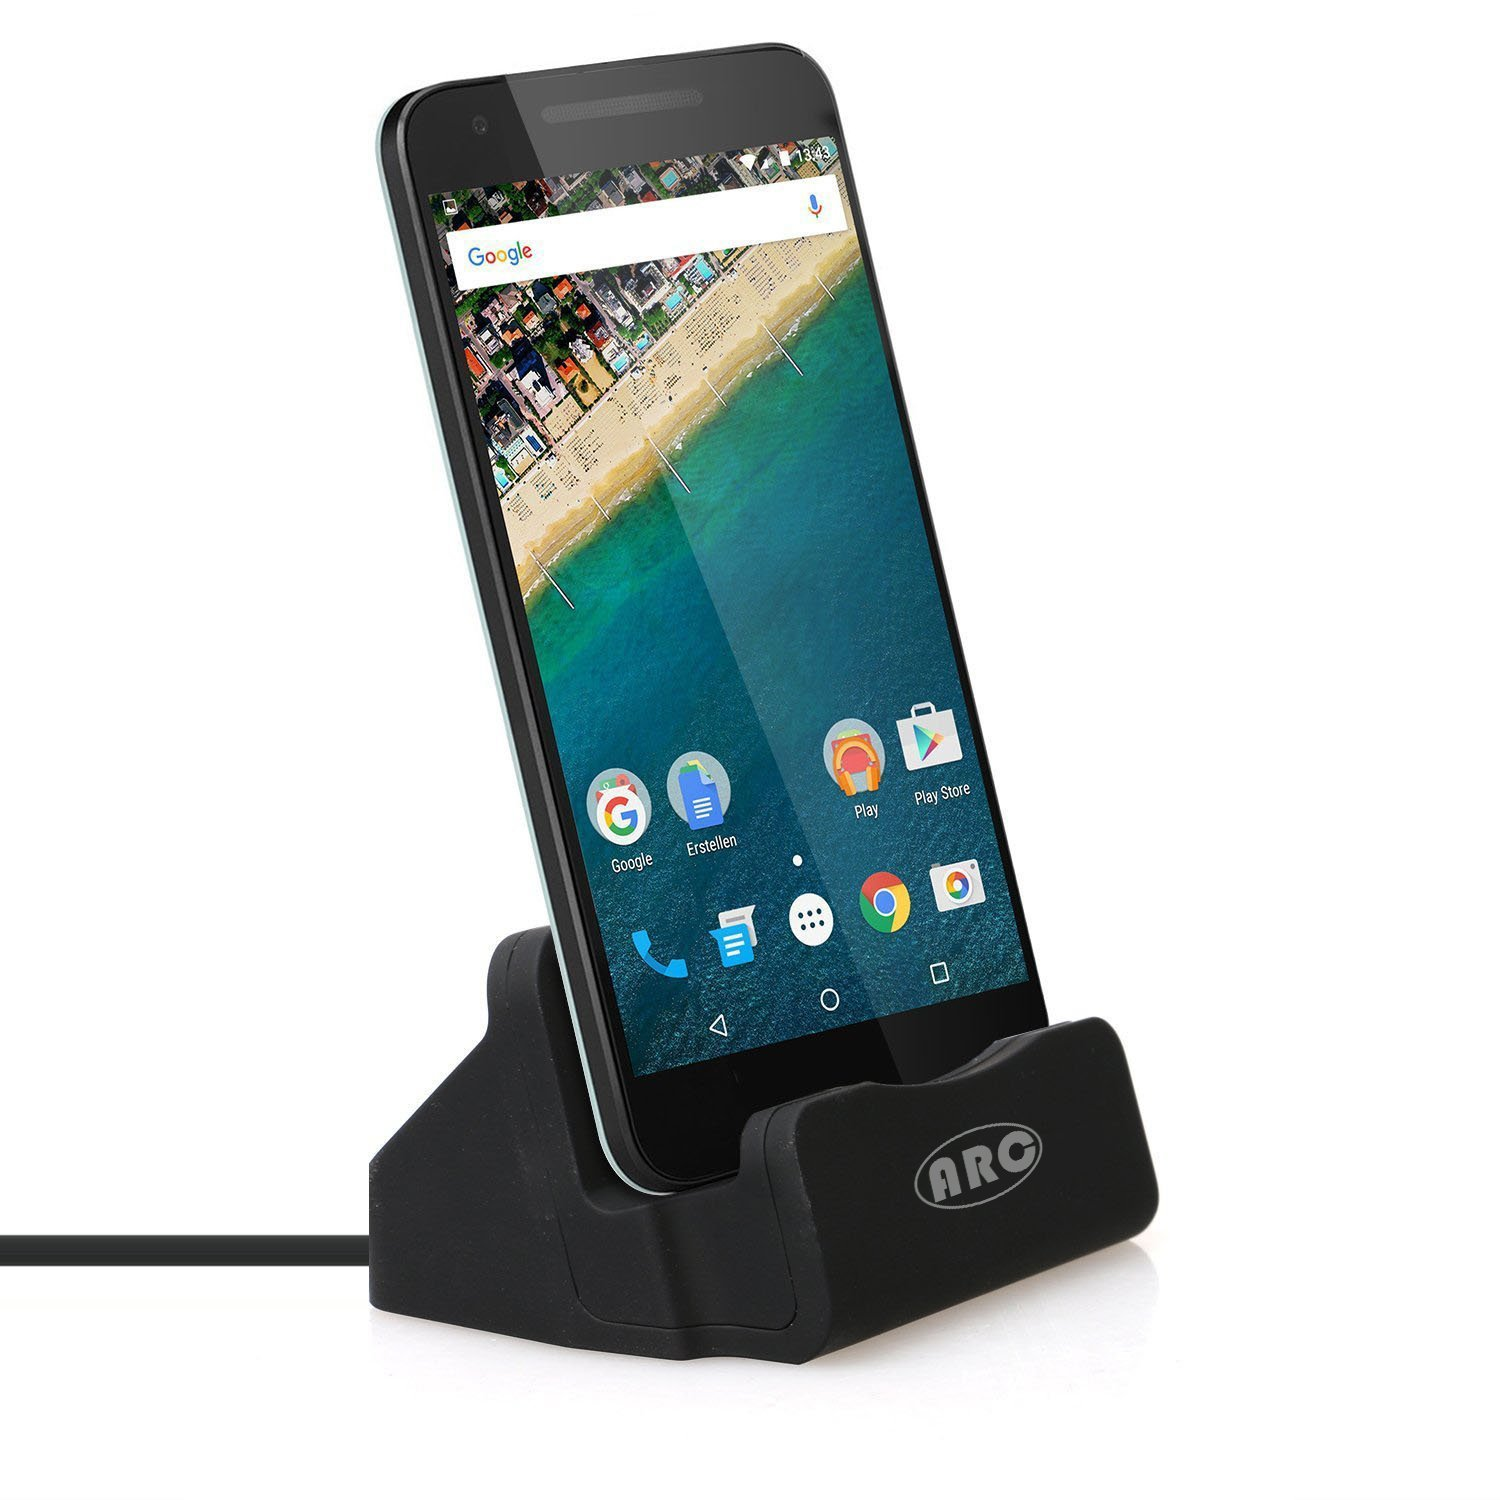 USB C Dock, USB Type C Charging Station Sync Dock for Nexus 5X Google Nexus 6P and Other Type-C Mobile Phone (Black)